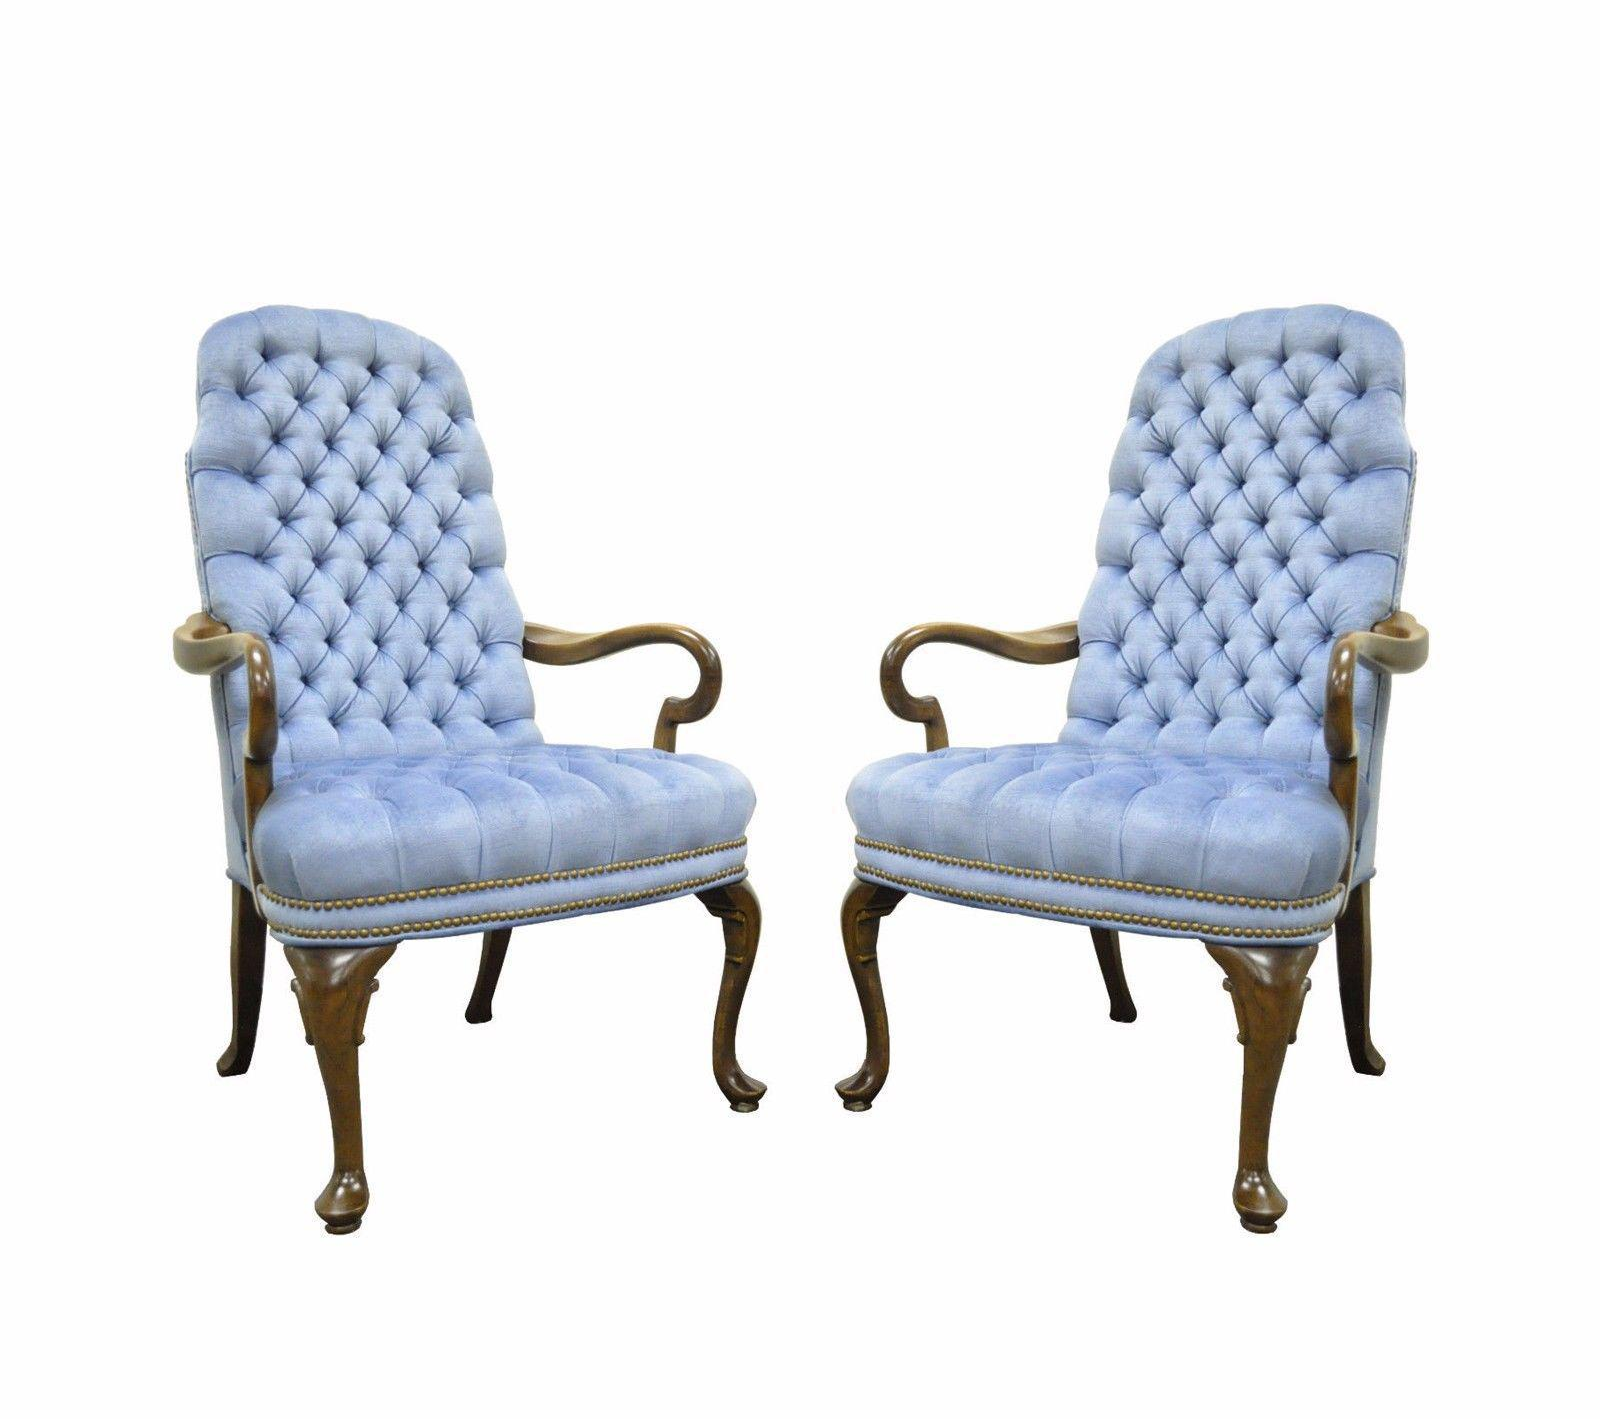 Vintage Queen Anne Ethan Allen Wingback Chairs   A Pair   Image 11 Of 11